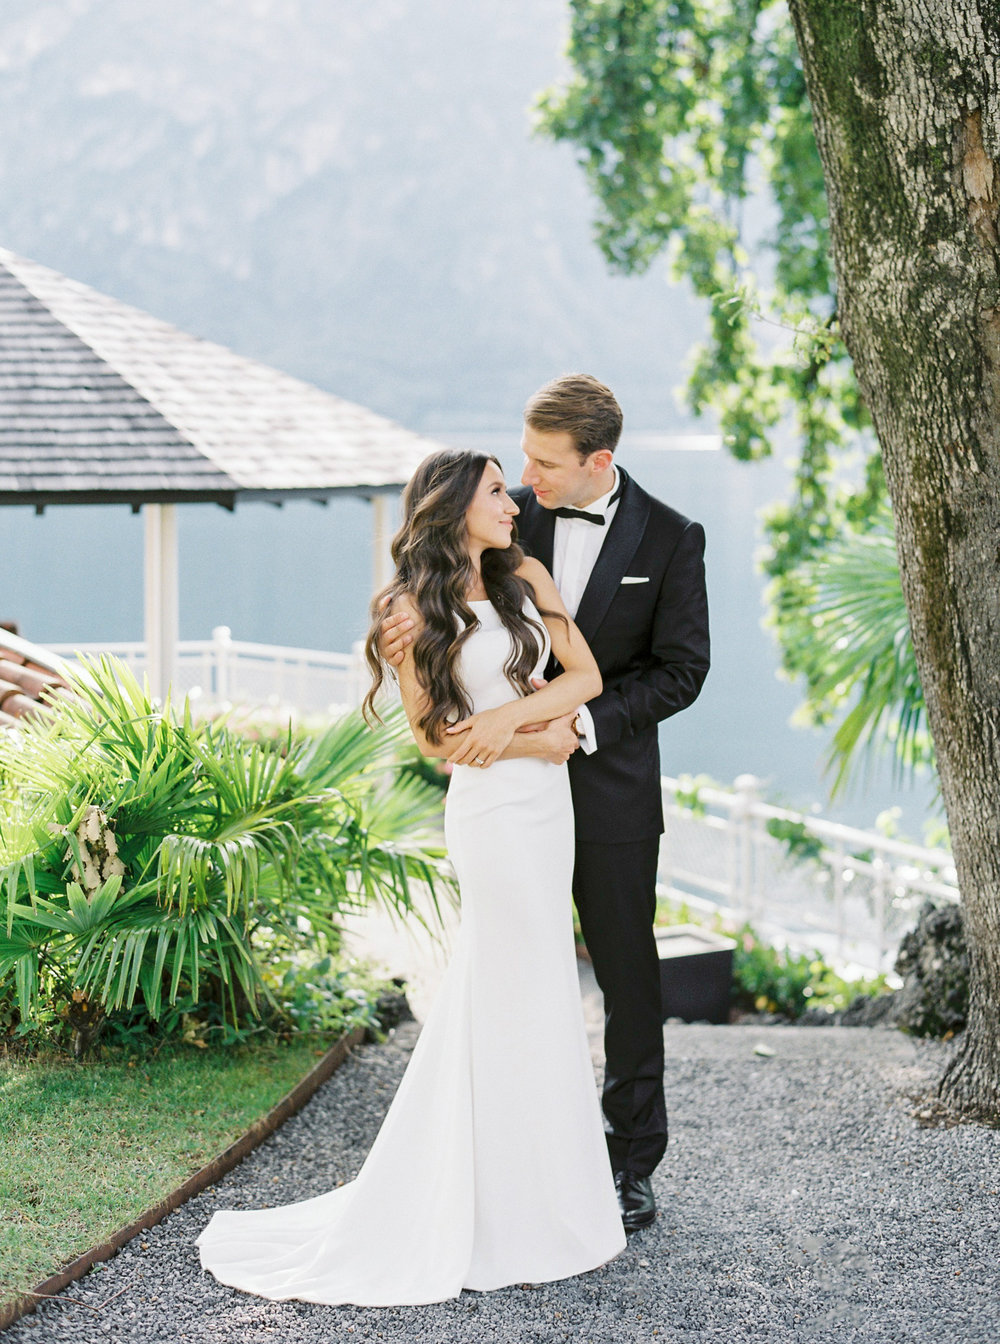 Lake+Como+wedding+by+nastia+vesna.jpeg